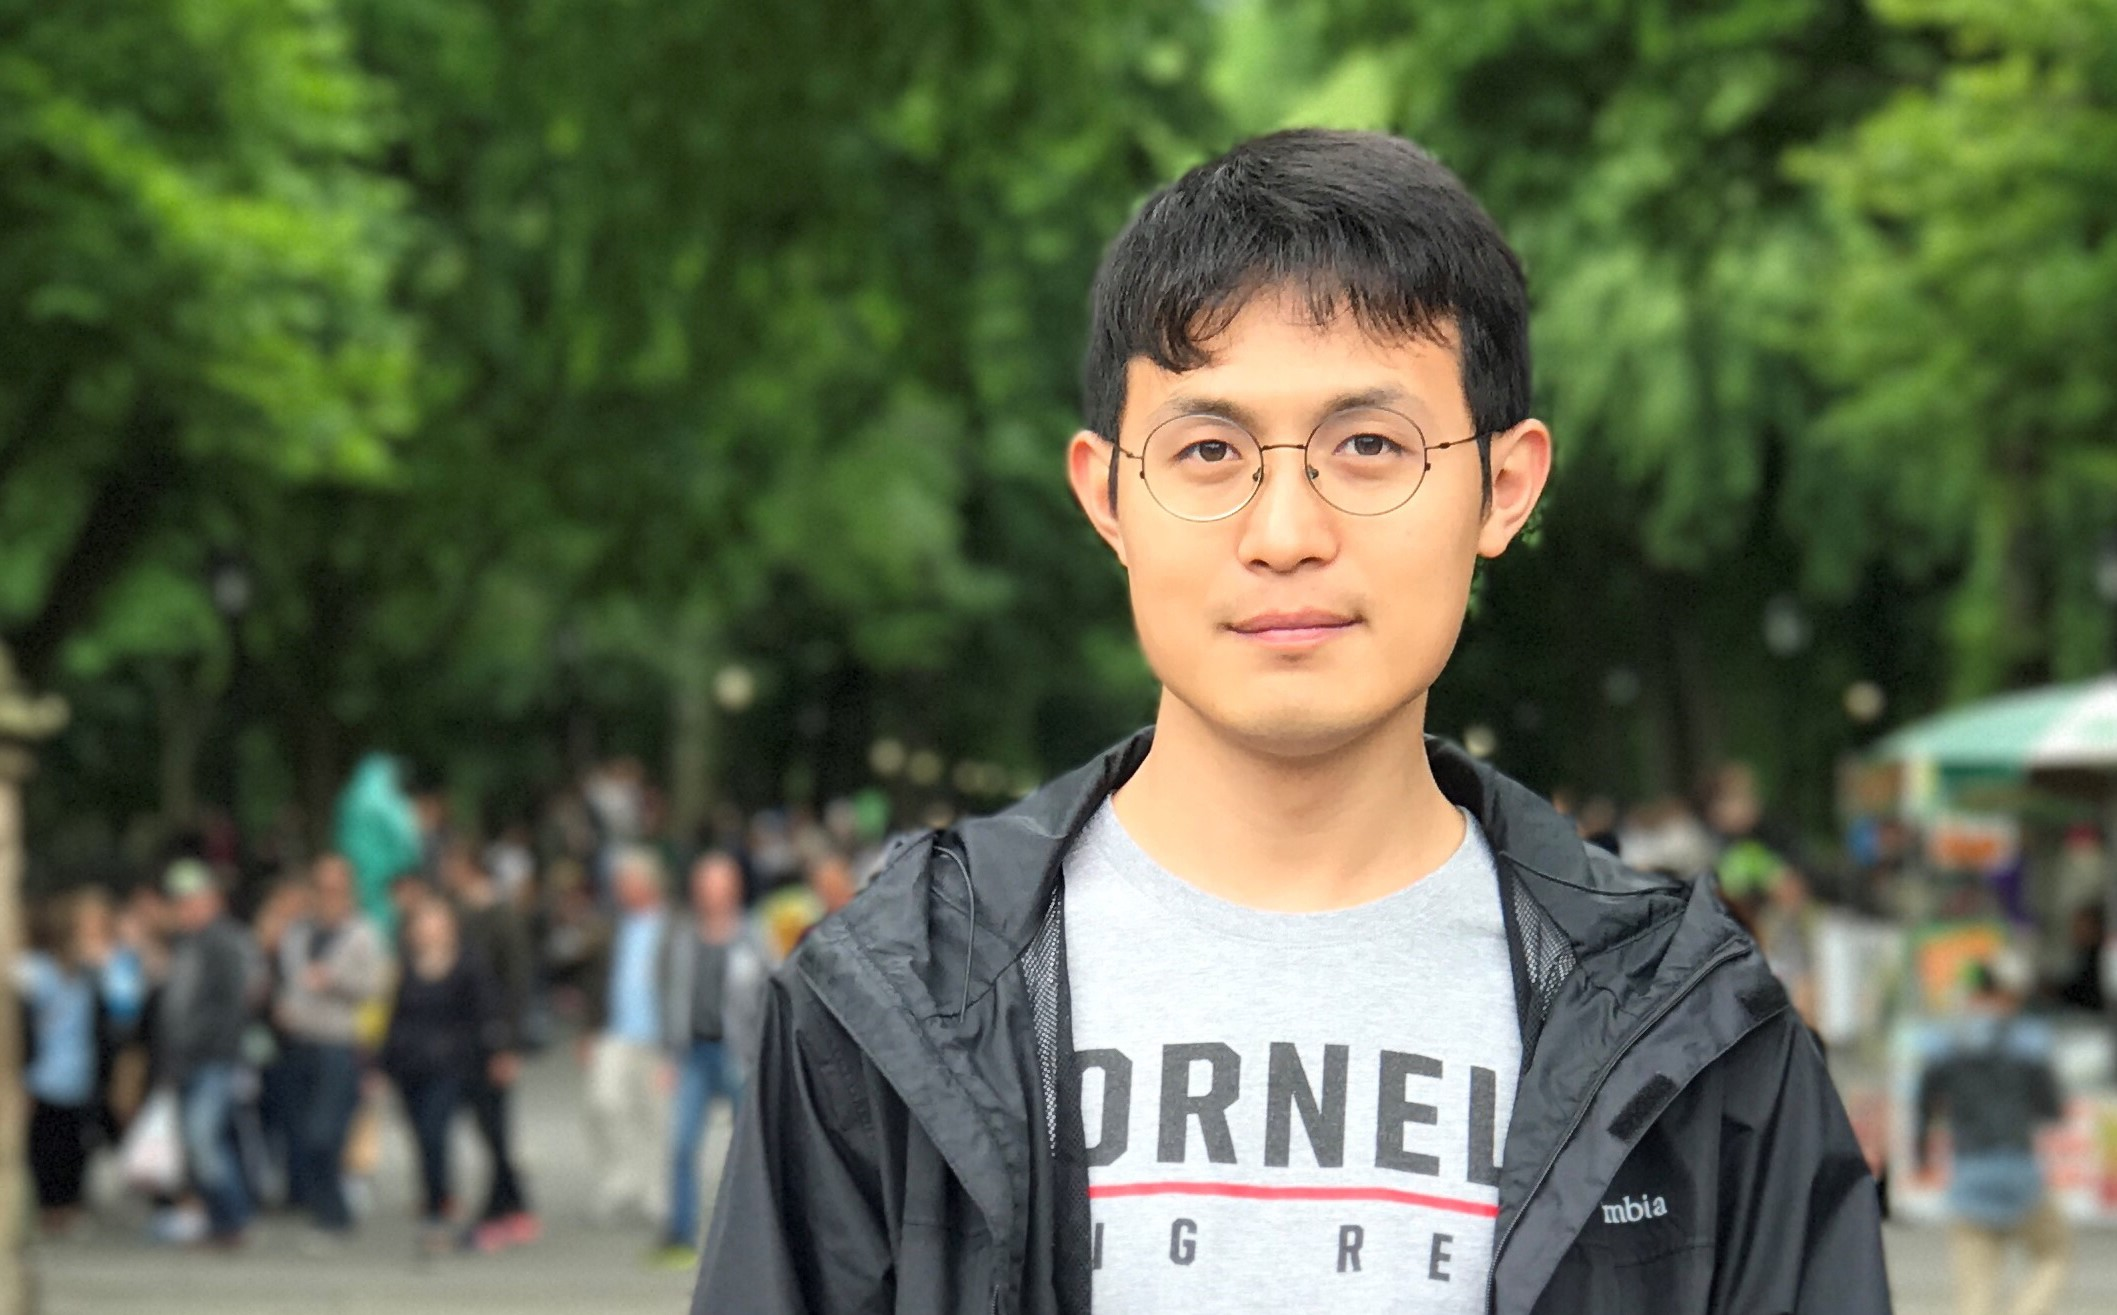 Third-year doctoral student Xiangkun (Elvis) Cao recently landed on the 2019 Forbes 30 Under 30 list, in the energy category, for his work on a project that converts carbon dioxide into a valuable resource.